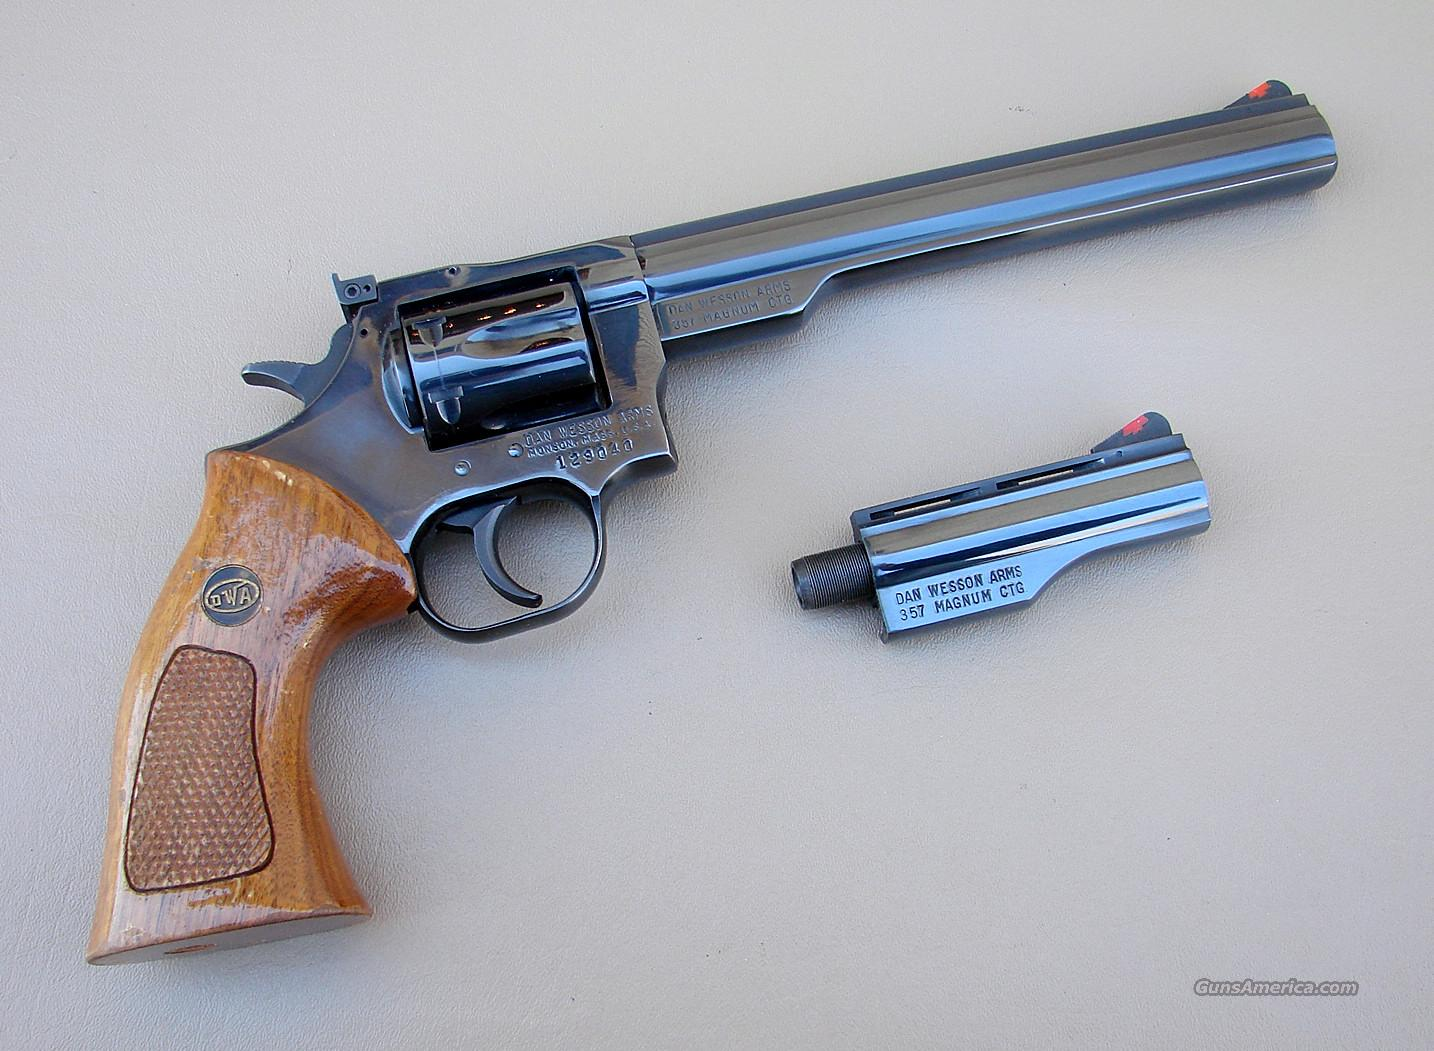 Dan Wesson 357 Revolver with 4 and 8 Inch Barrels  Guns > Pistols > Dan Wesson Pistols/Revolvers > Revolvers